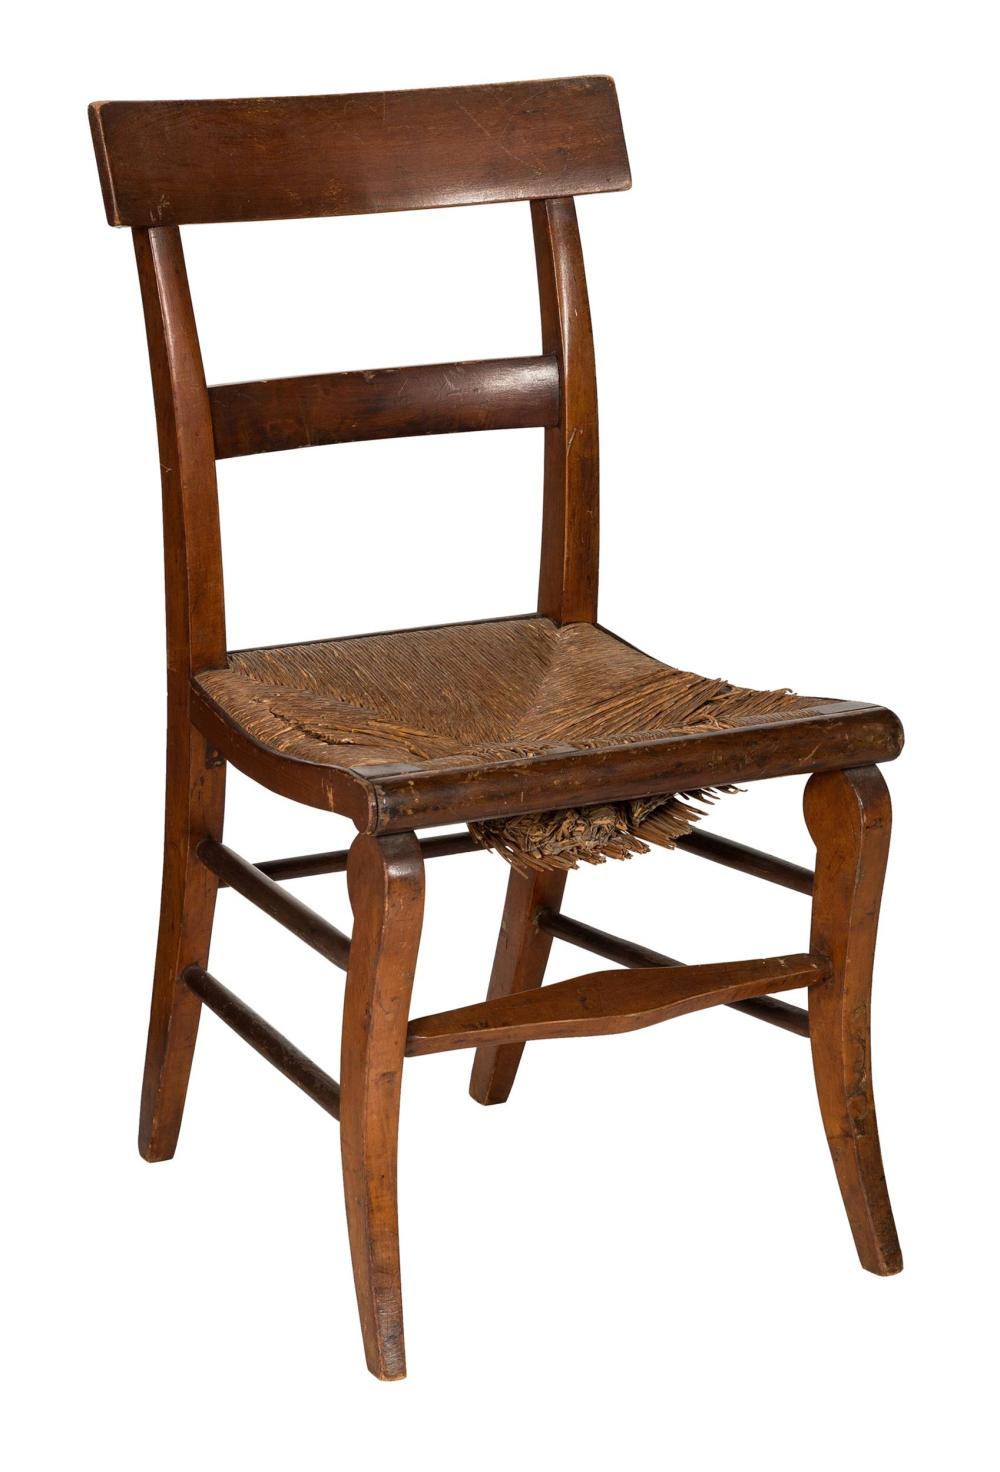 """Jackie & JFK Family Owned And Used at the White House Rustic Farm Chair from the Sotheby's """"Property from Kennedy Family Homes"""" Auction Impeccable Provenance"""